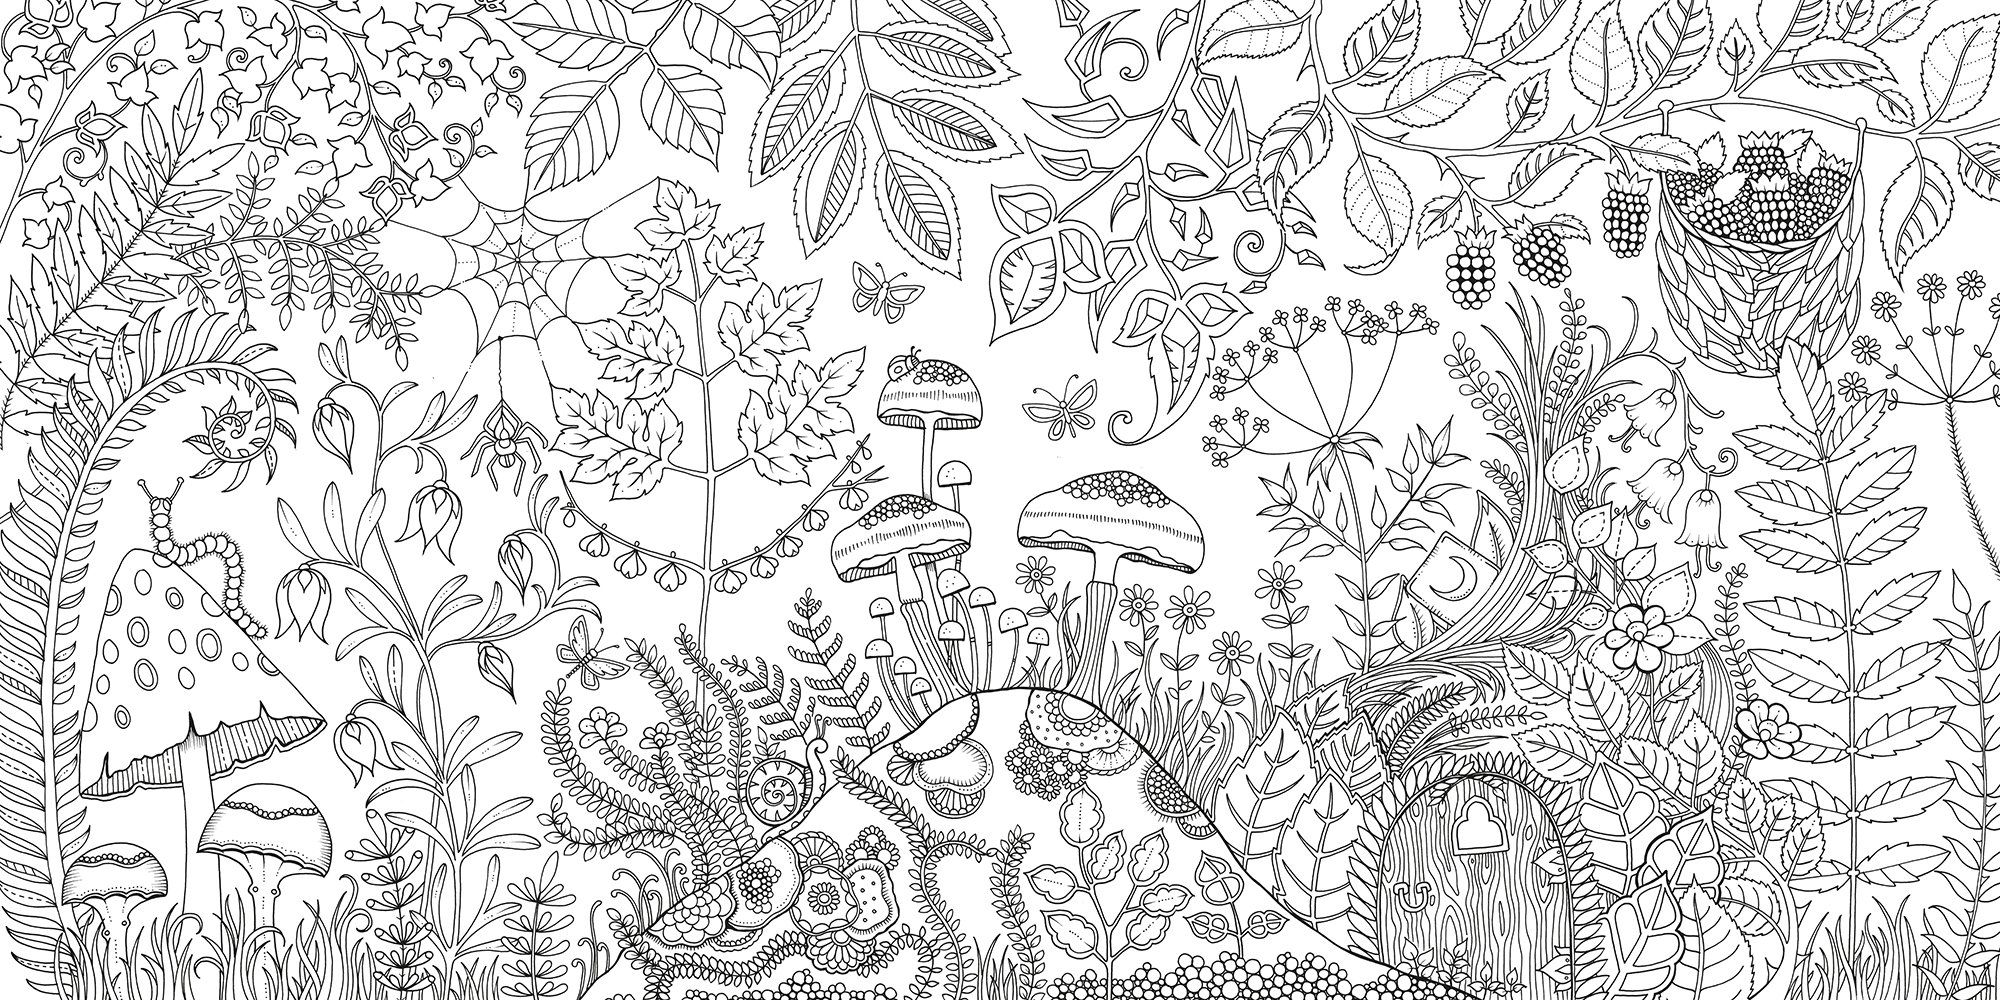 amazoncom enchanted forest an inky quest coloring book 6063887956574 johanna basford books - Best Coloring Books For Adults